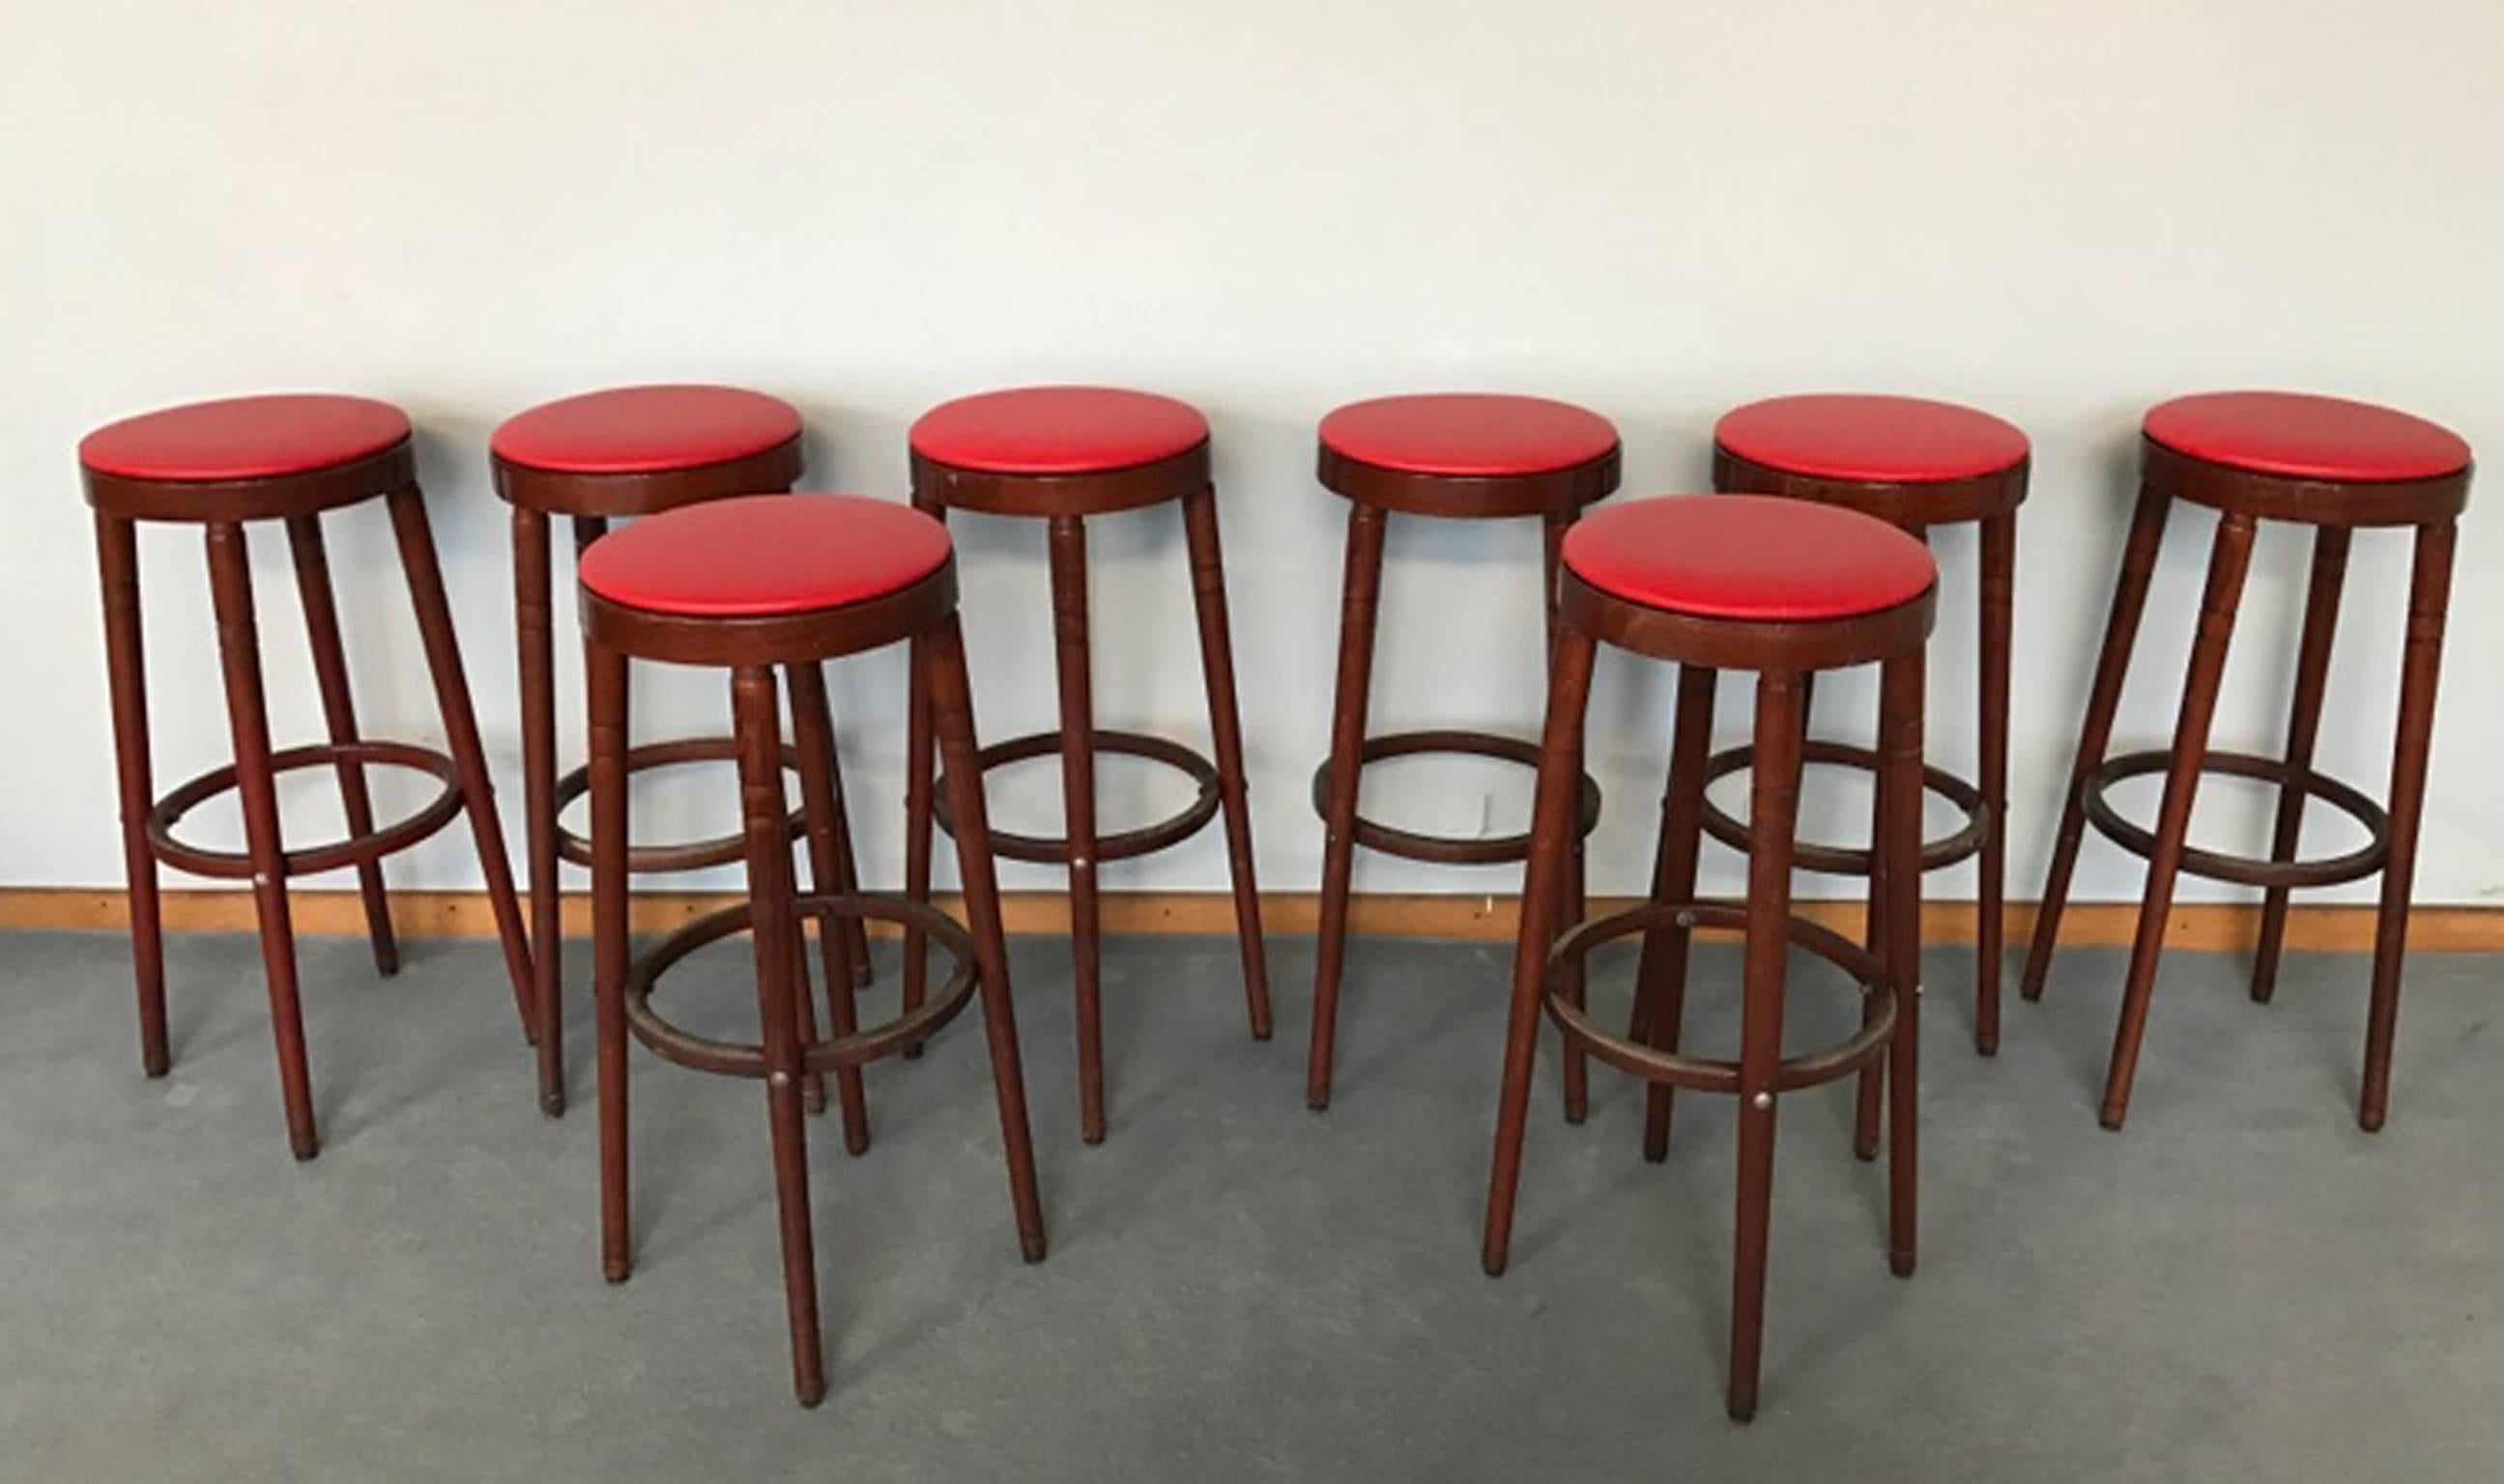 with bar welcome mid leather your stool modern this century decoreven red black stools uk design overstock into kitchen parisian